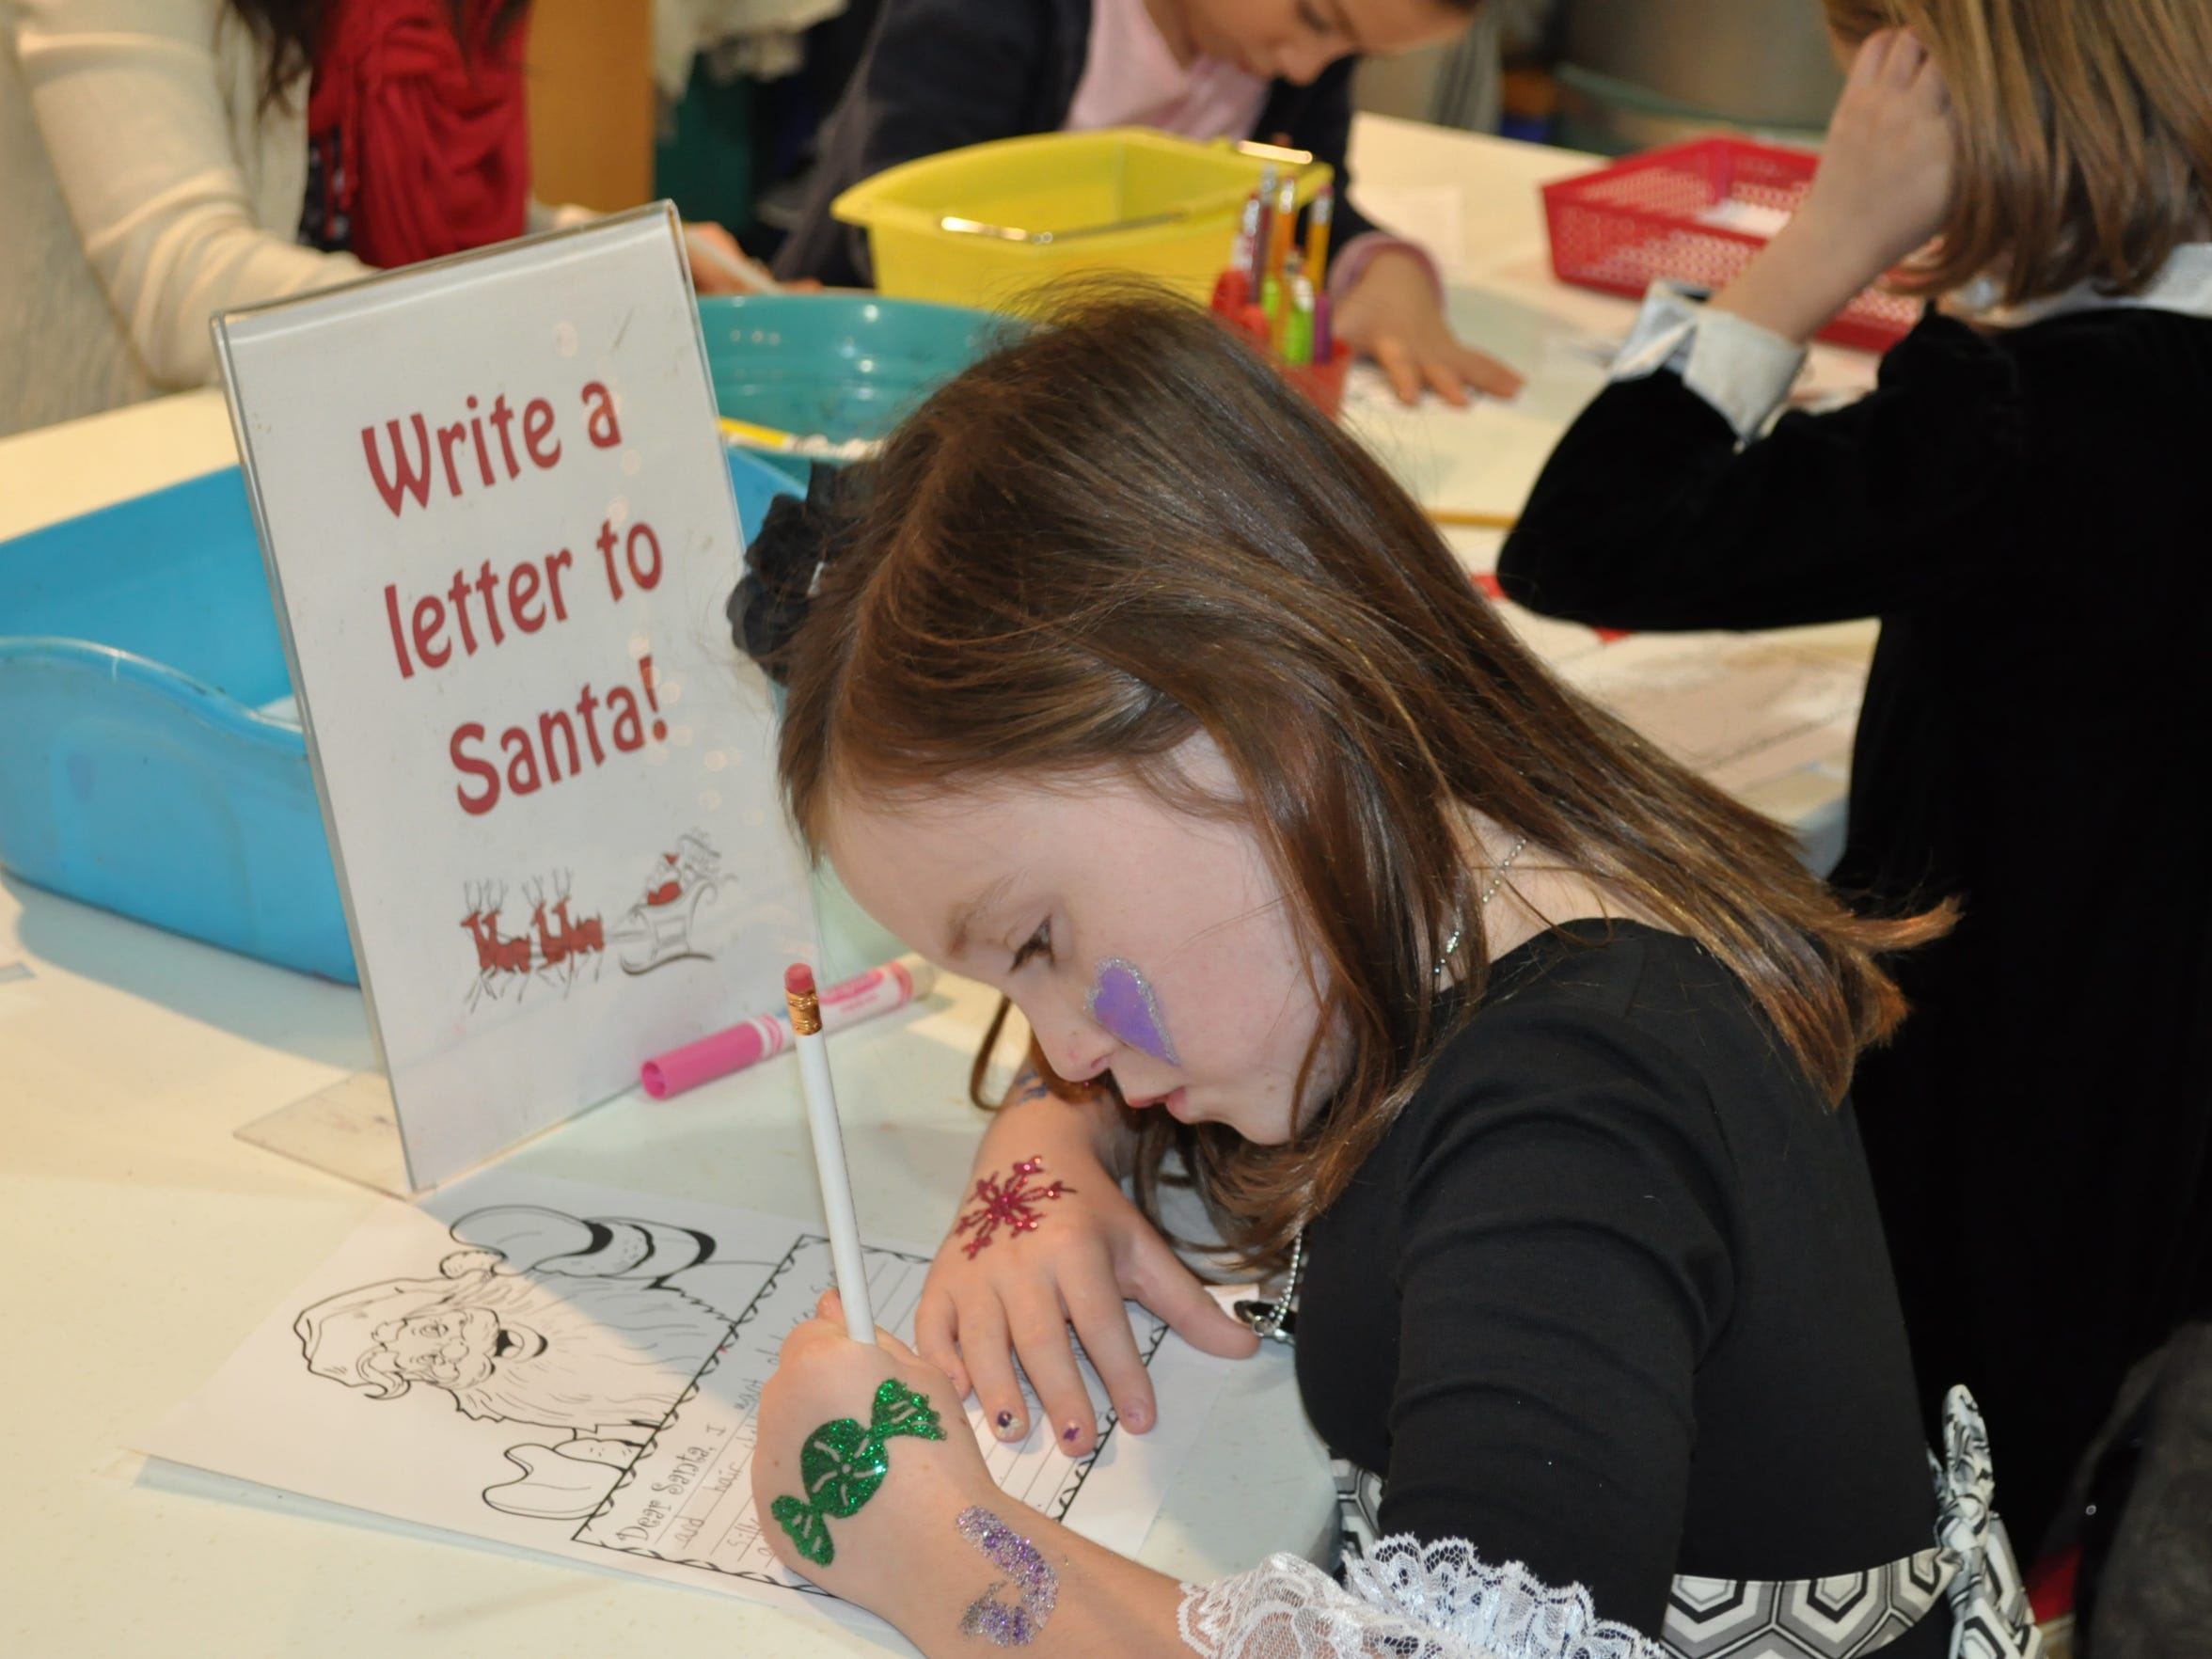 Kids can enjoy all sorts of holiday activities at the Discovery Center's open house on Saturday.